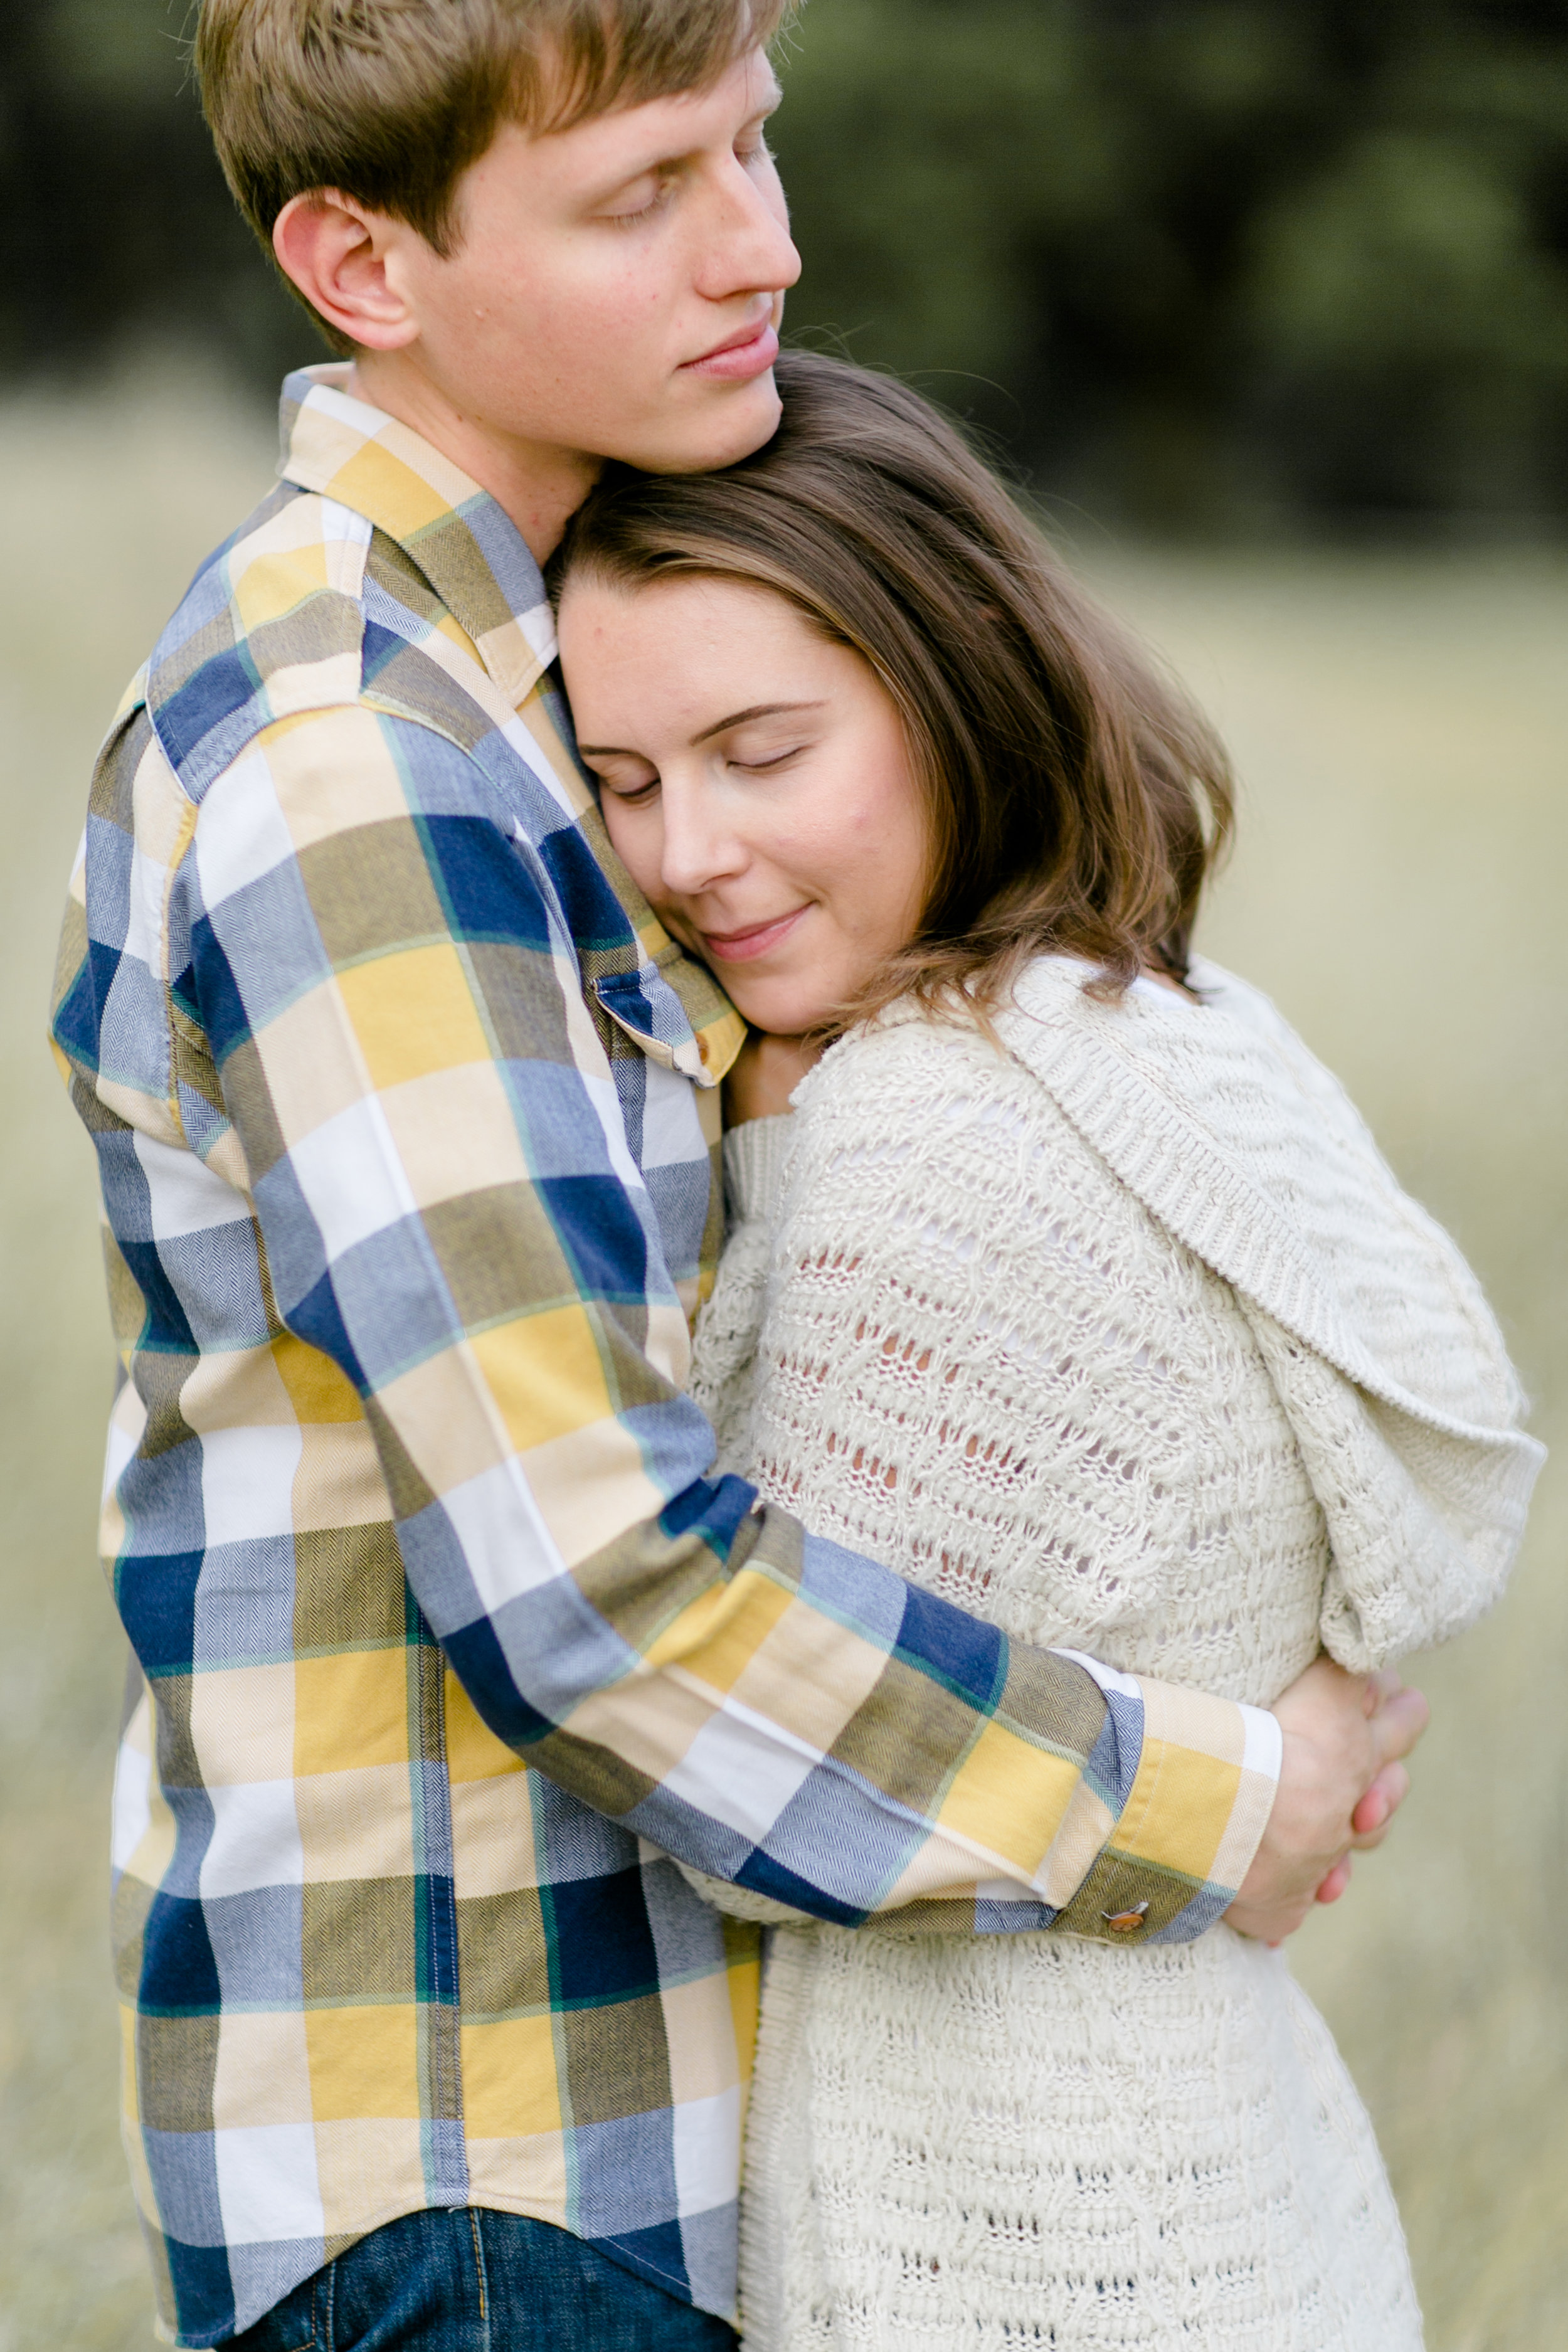 Austin_Texas_Fine_Art_Wedding_Photographer_Kayla_Snell_Photography_South_Congress_Engagement_Session118.jpg